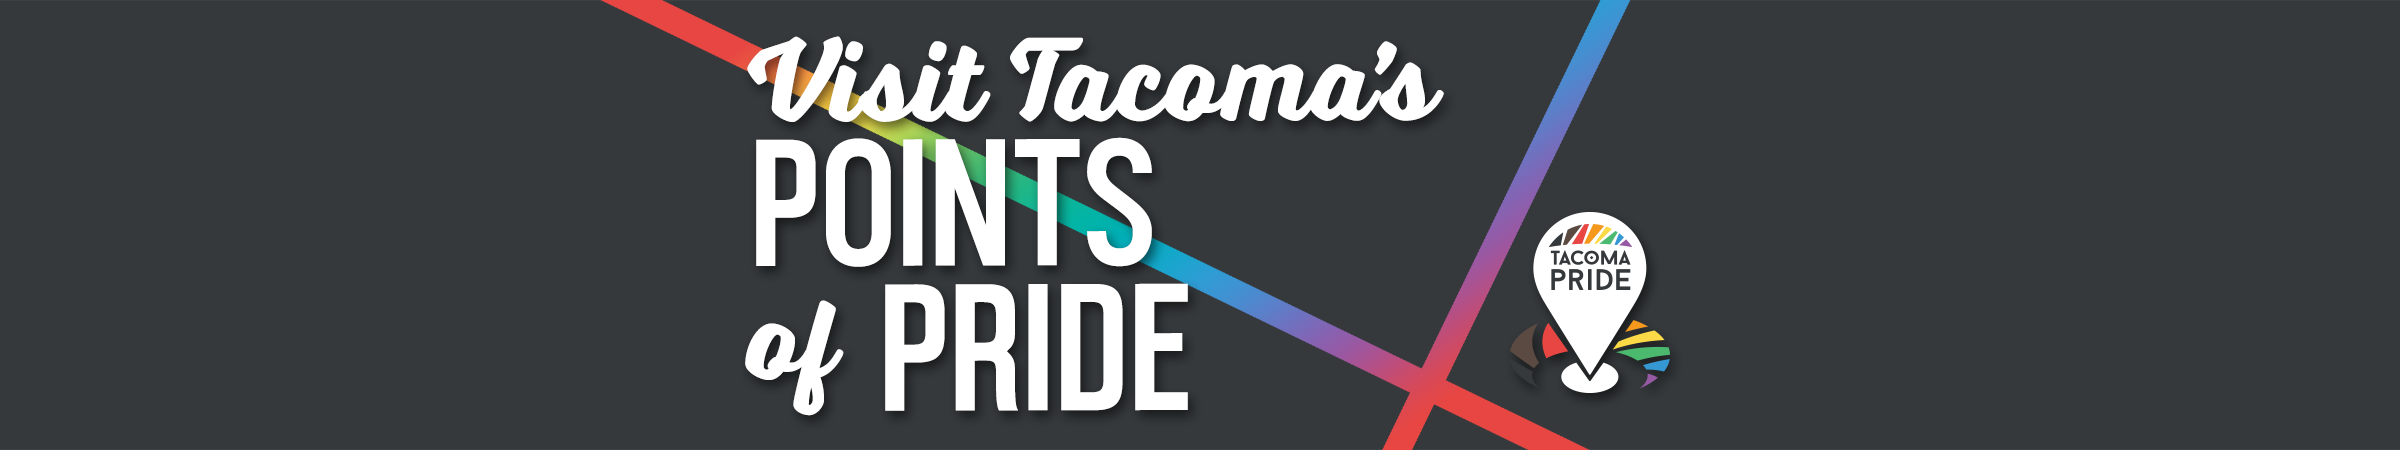 Visit Tacoma's Points of Pride